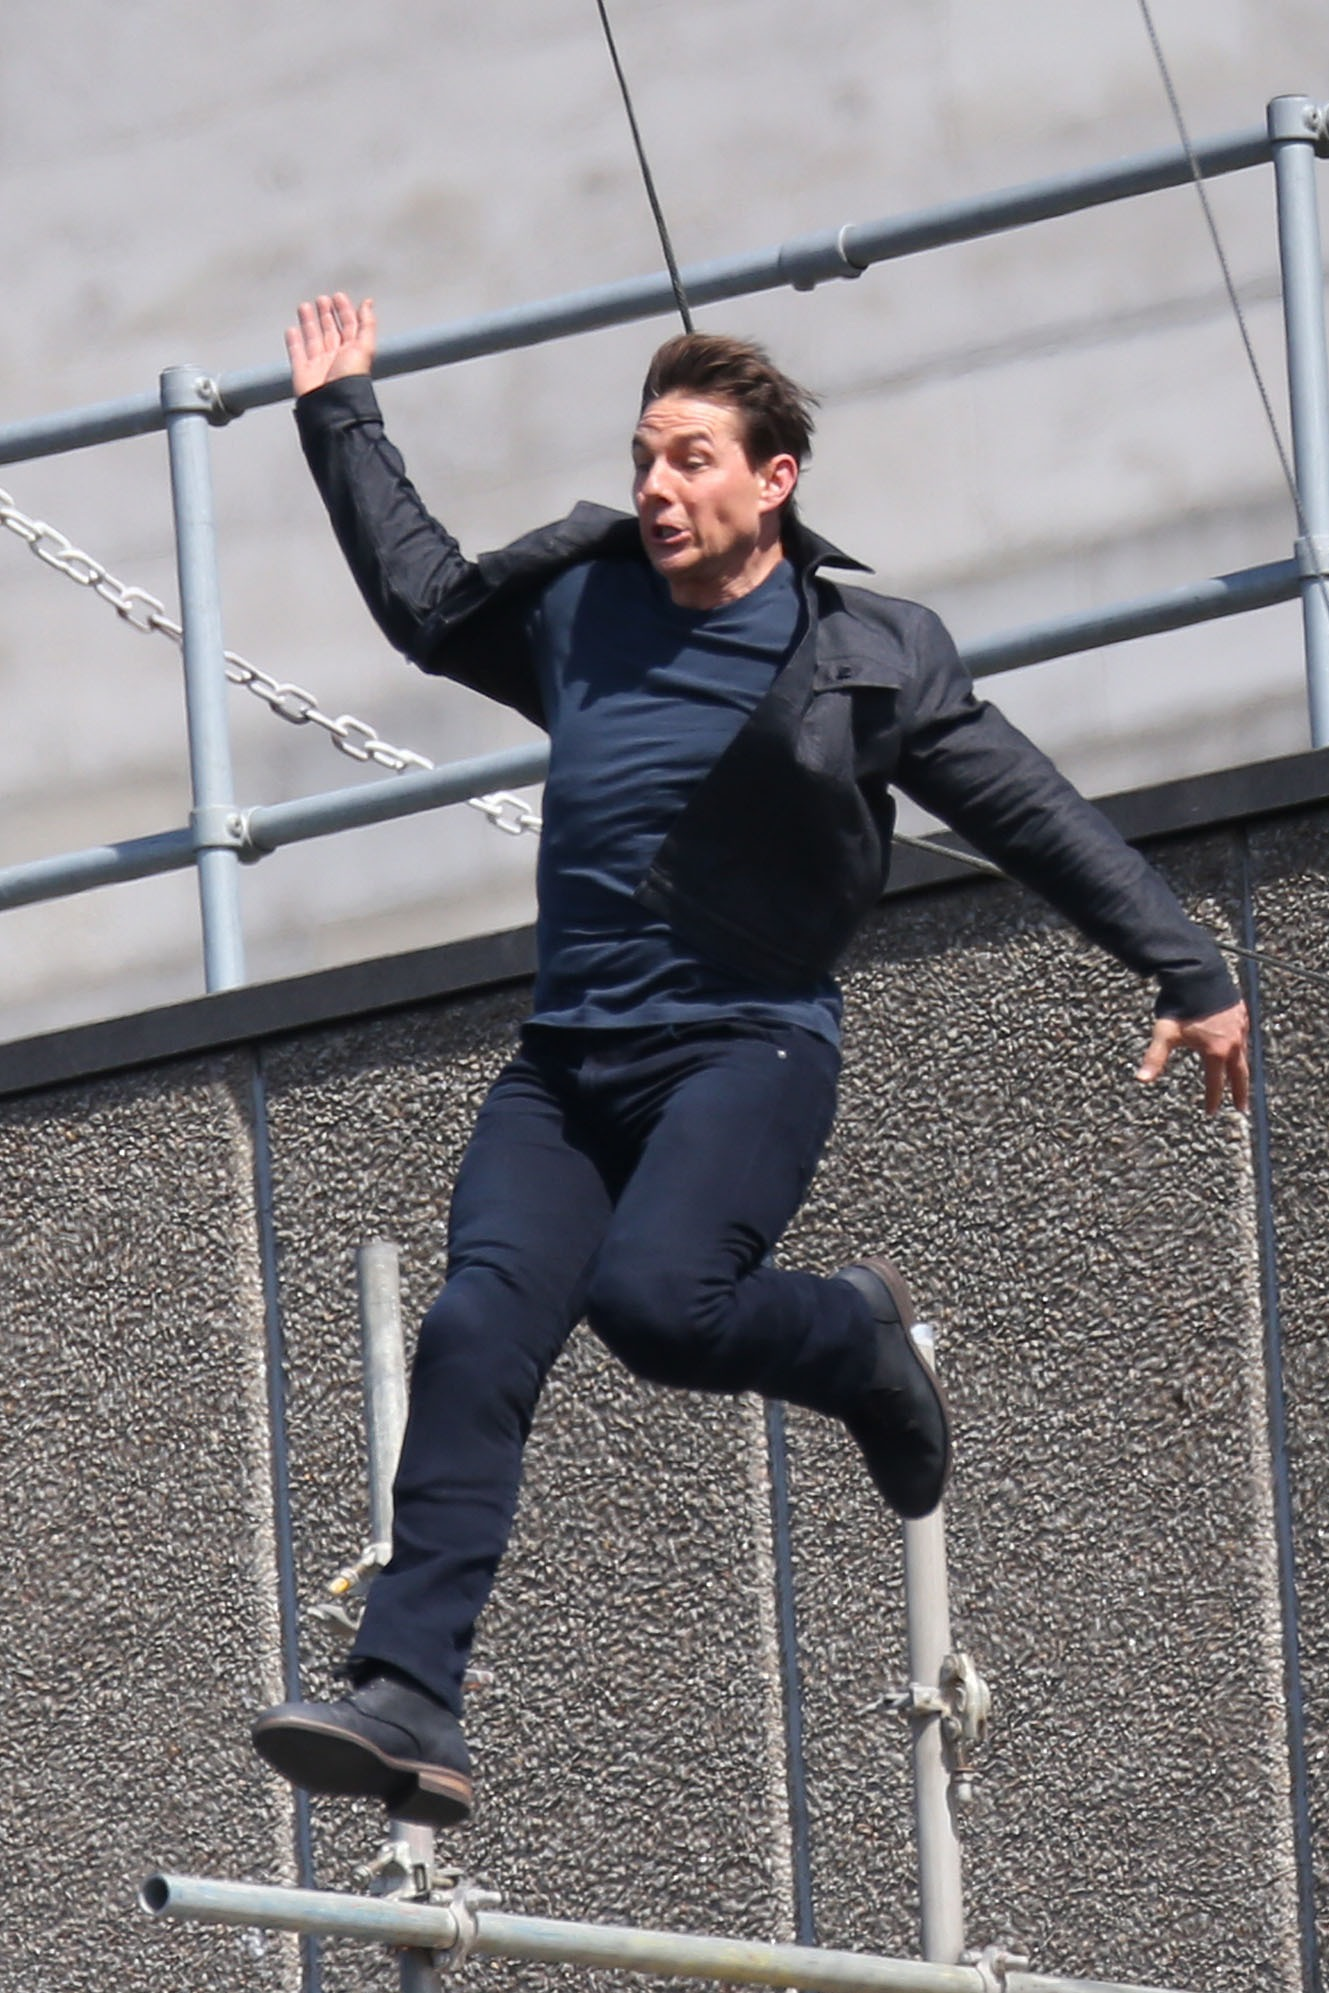 Tom Cruise Mission Impossible Stunt